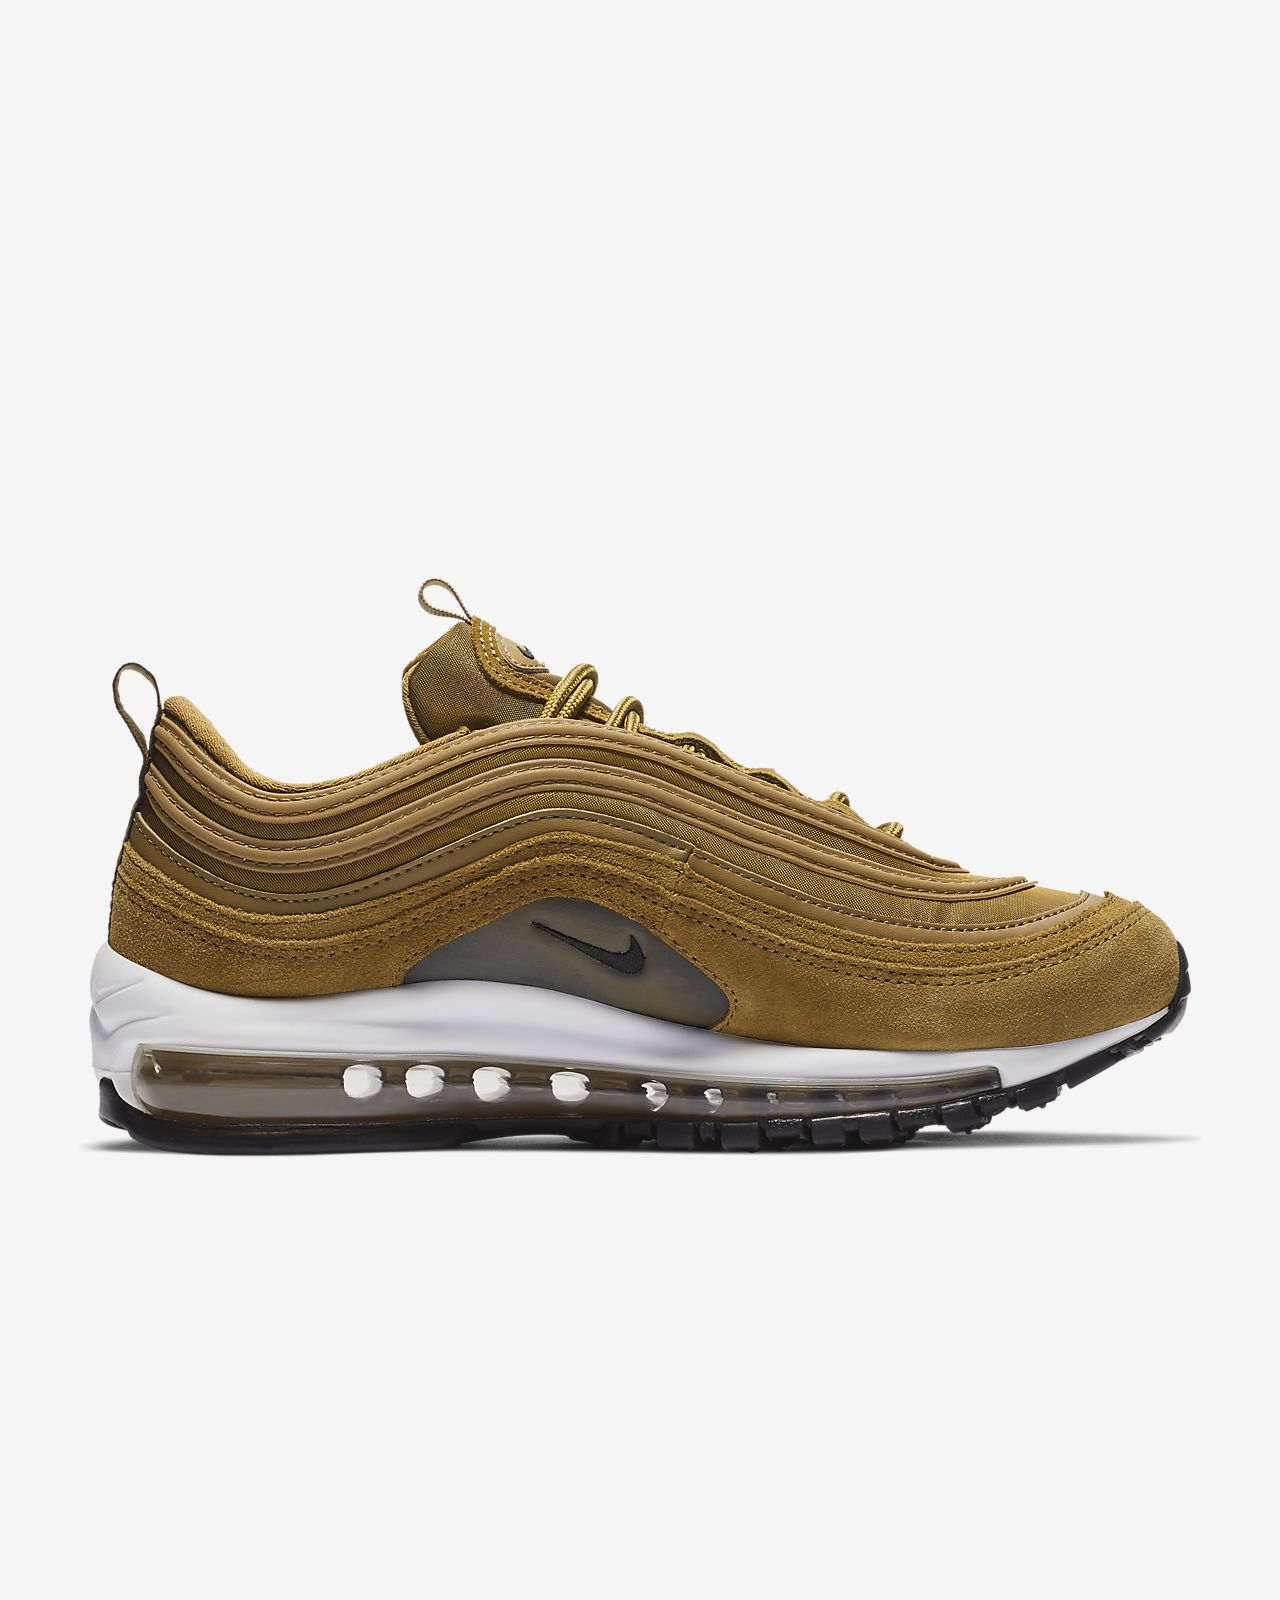 online store 8a48d 4fdc5 ... Nike Air Max 97 SE Womens Shoe